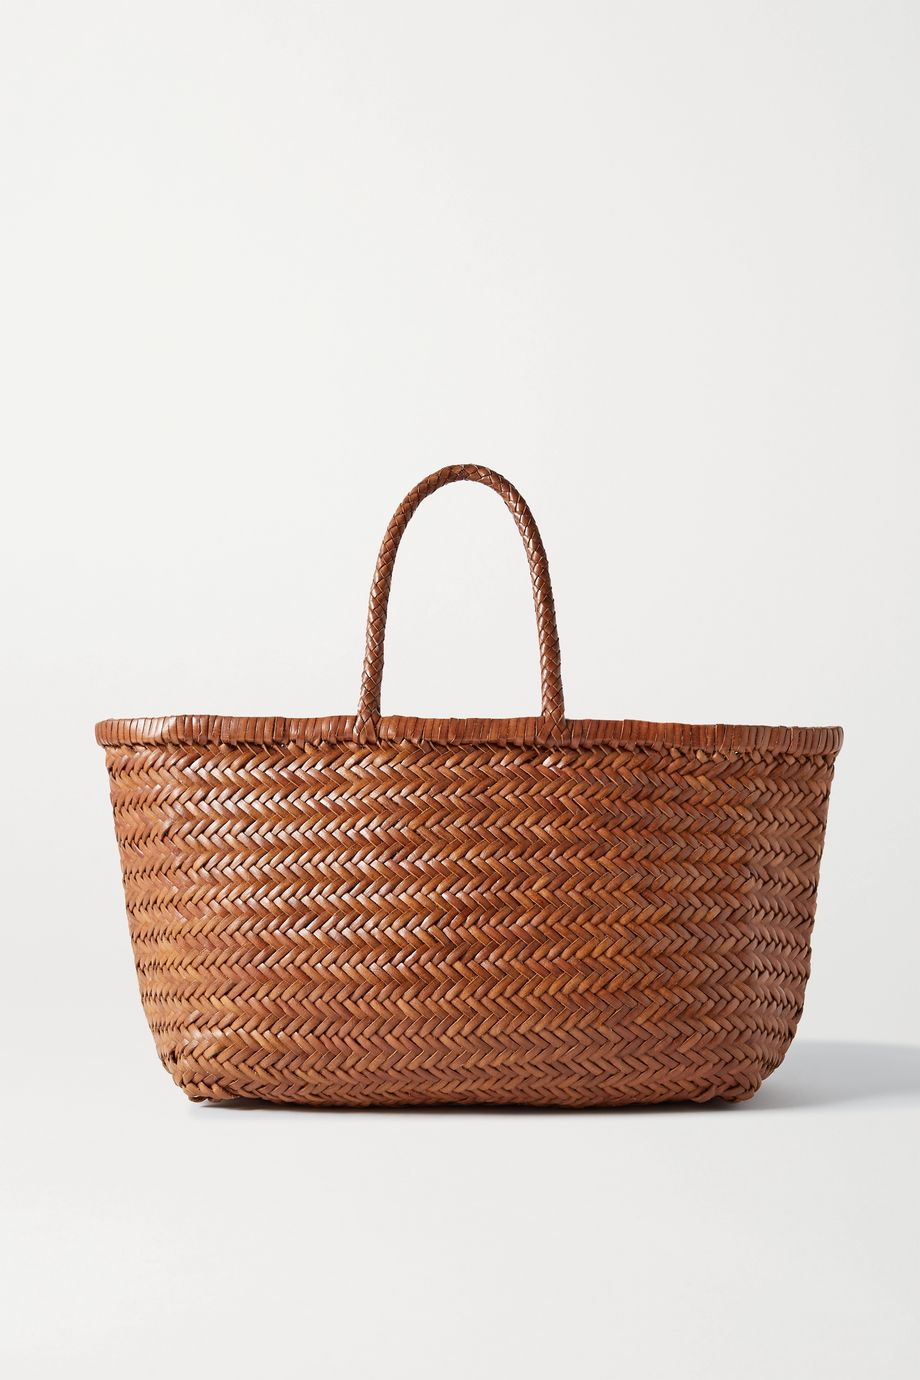 Dragon Diffusion Bamboo Triple Jump large woven leather tote